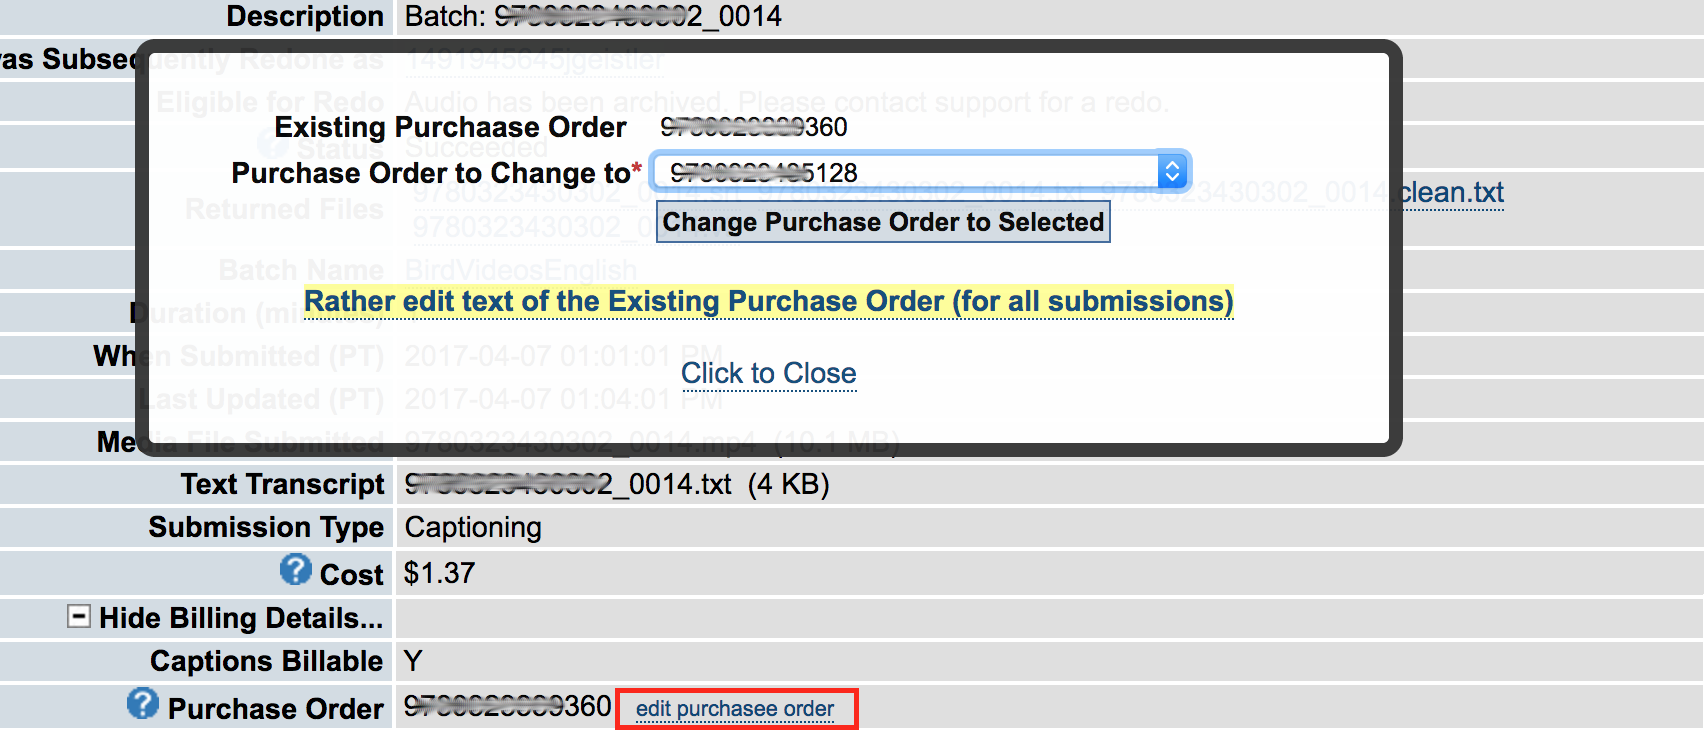 Submission Details page editing purchase order referenced